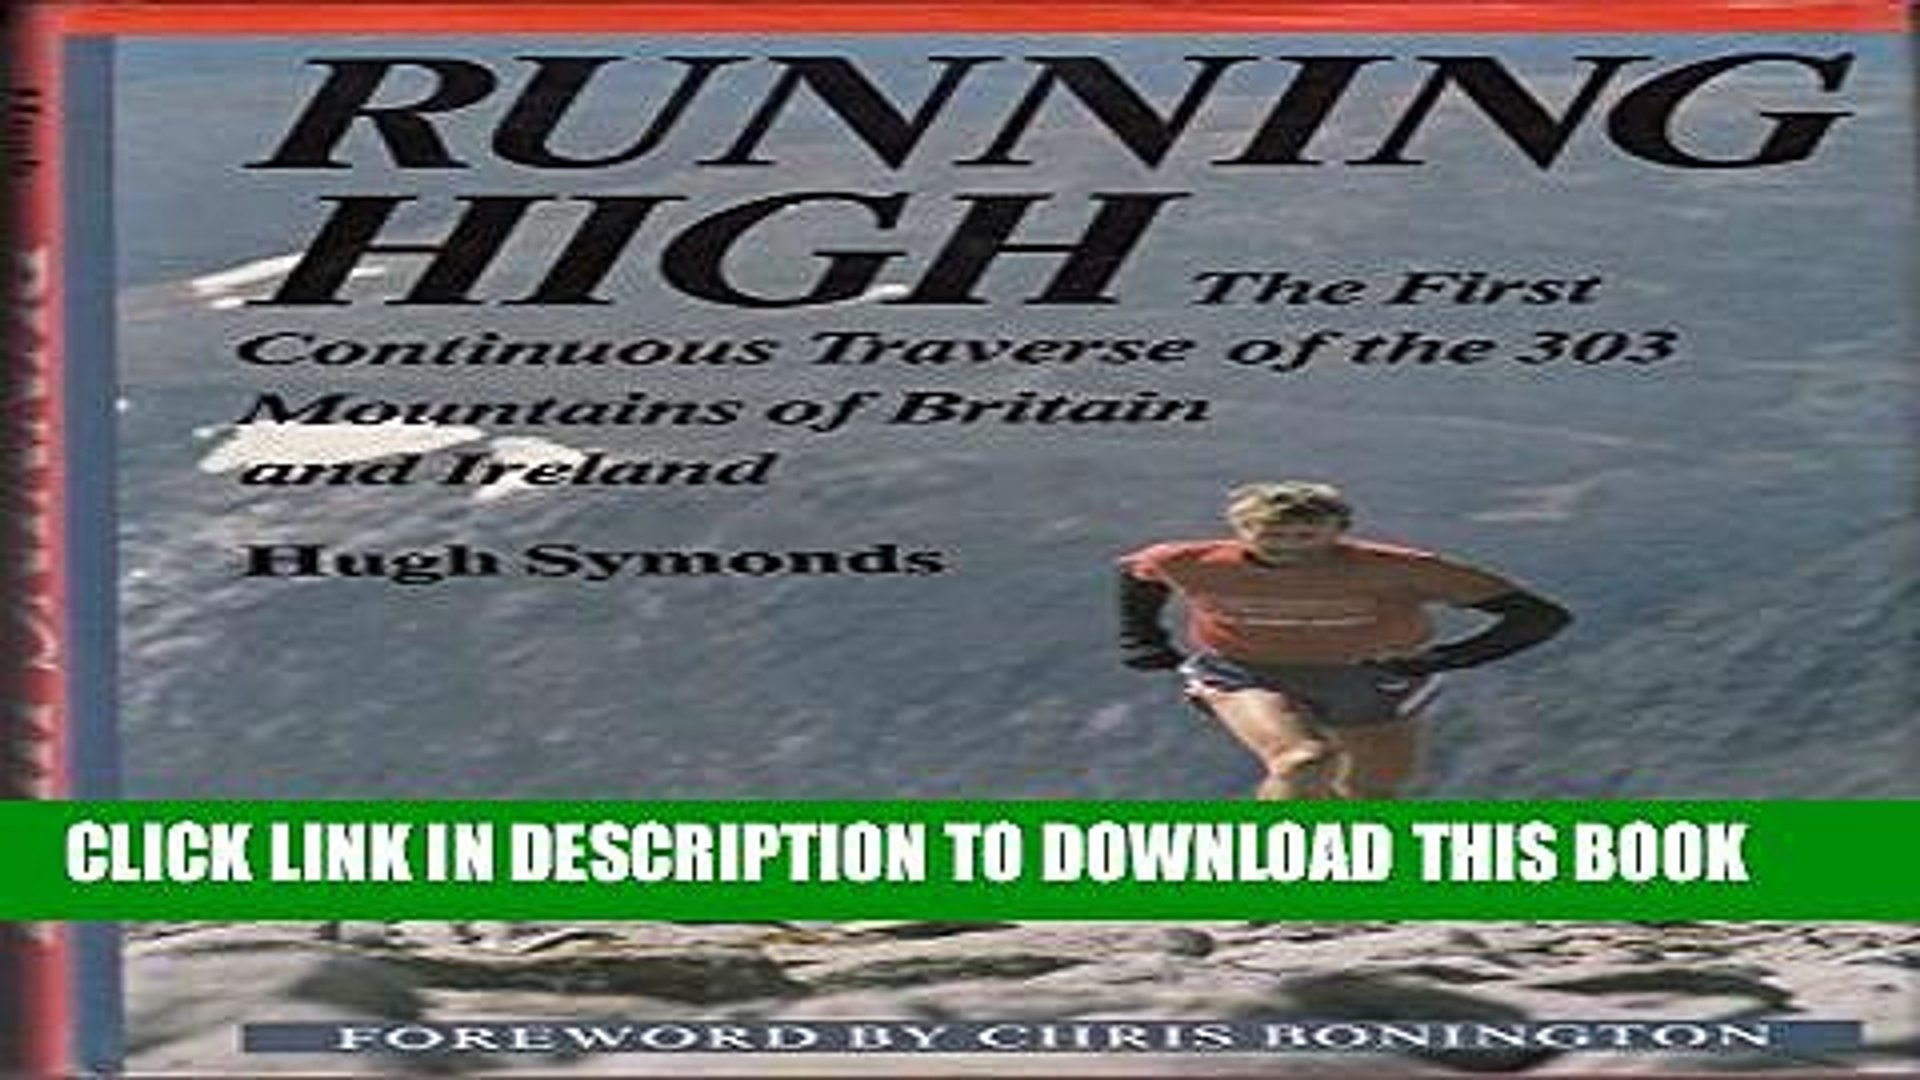 [PDF] Running High: The First Continuous Traverse of the 303 Mountains of Britain and Ireland Full